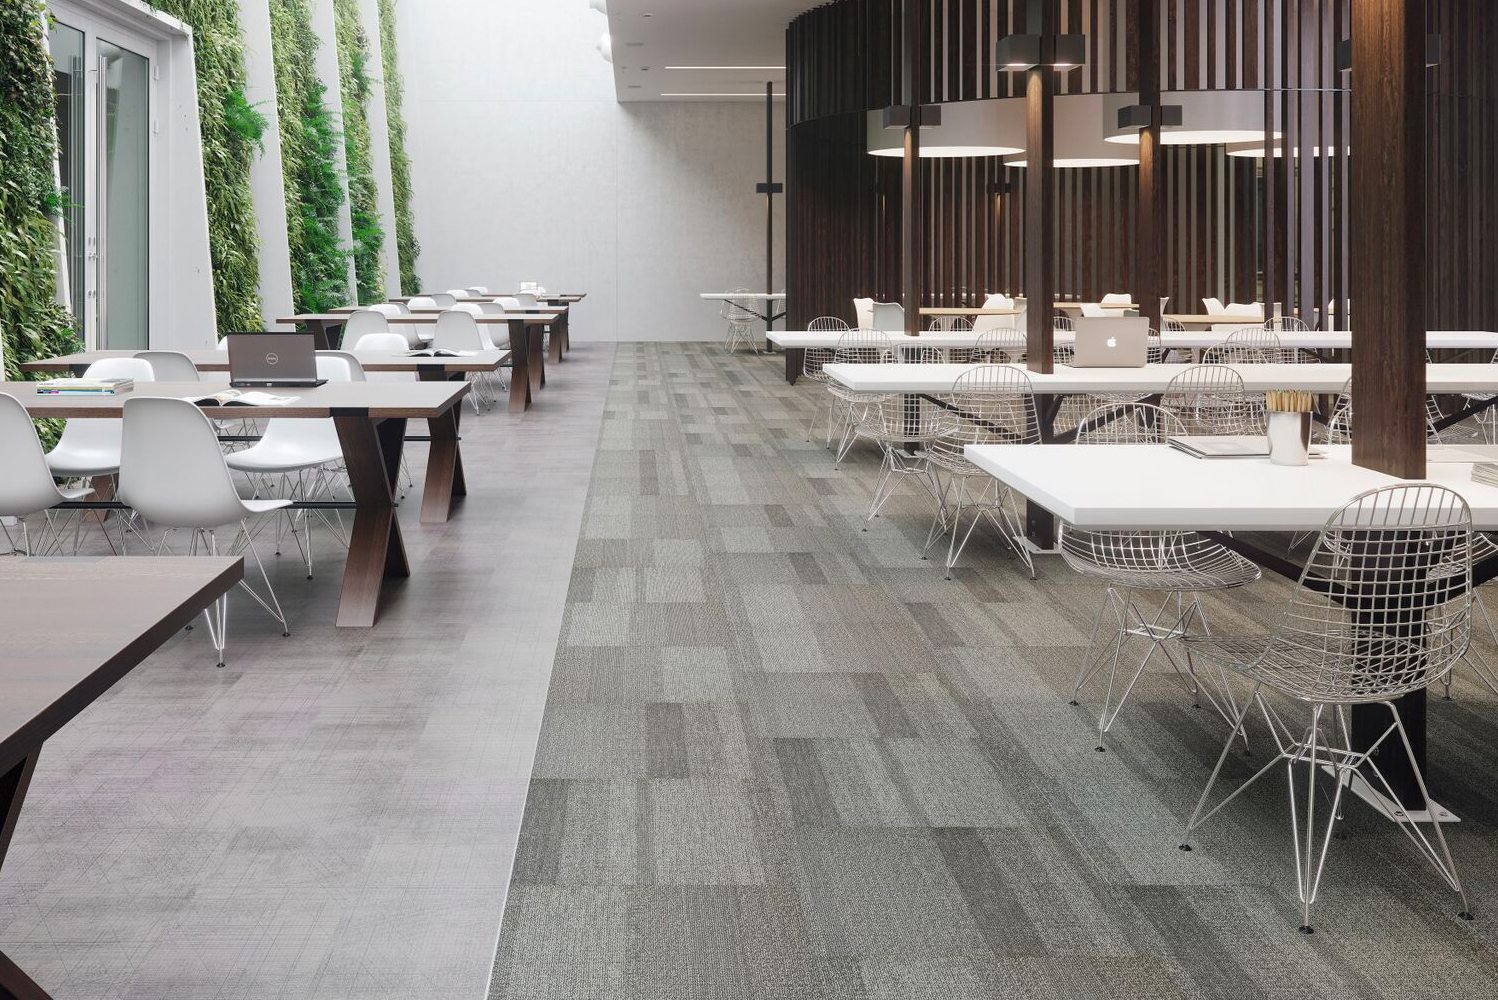 Braided modular carpet and Meshwork LVT are collaborations with designer Suzanne Tick.